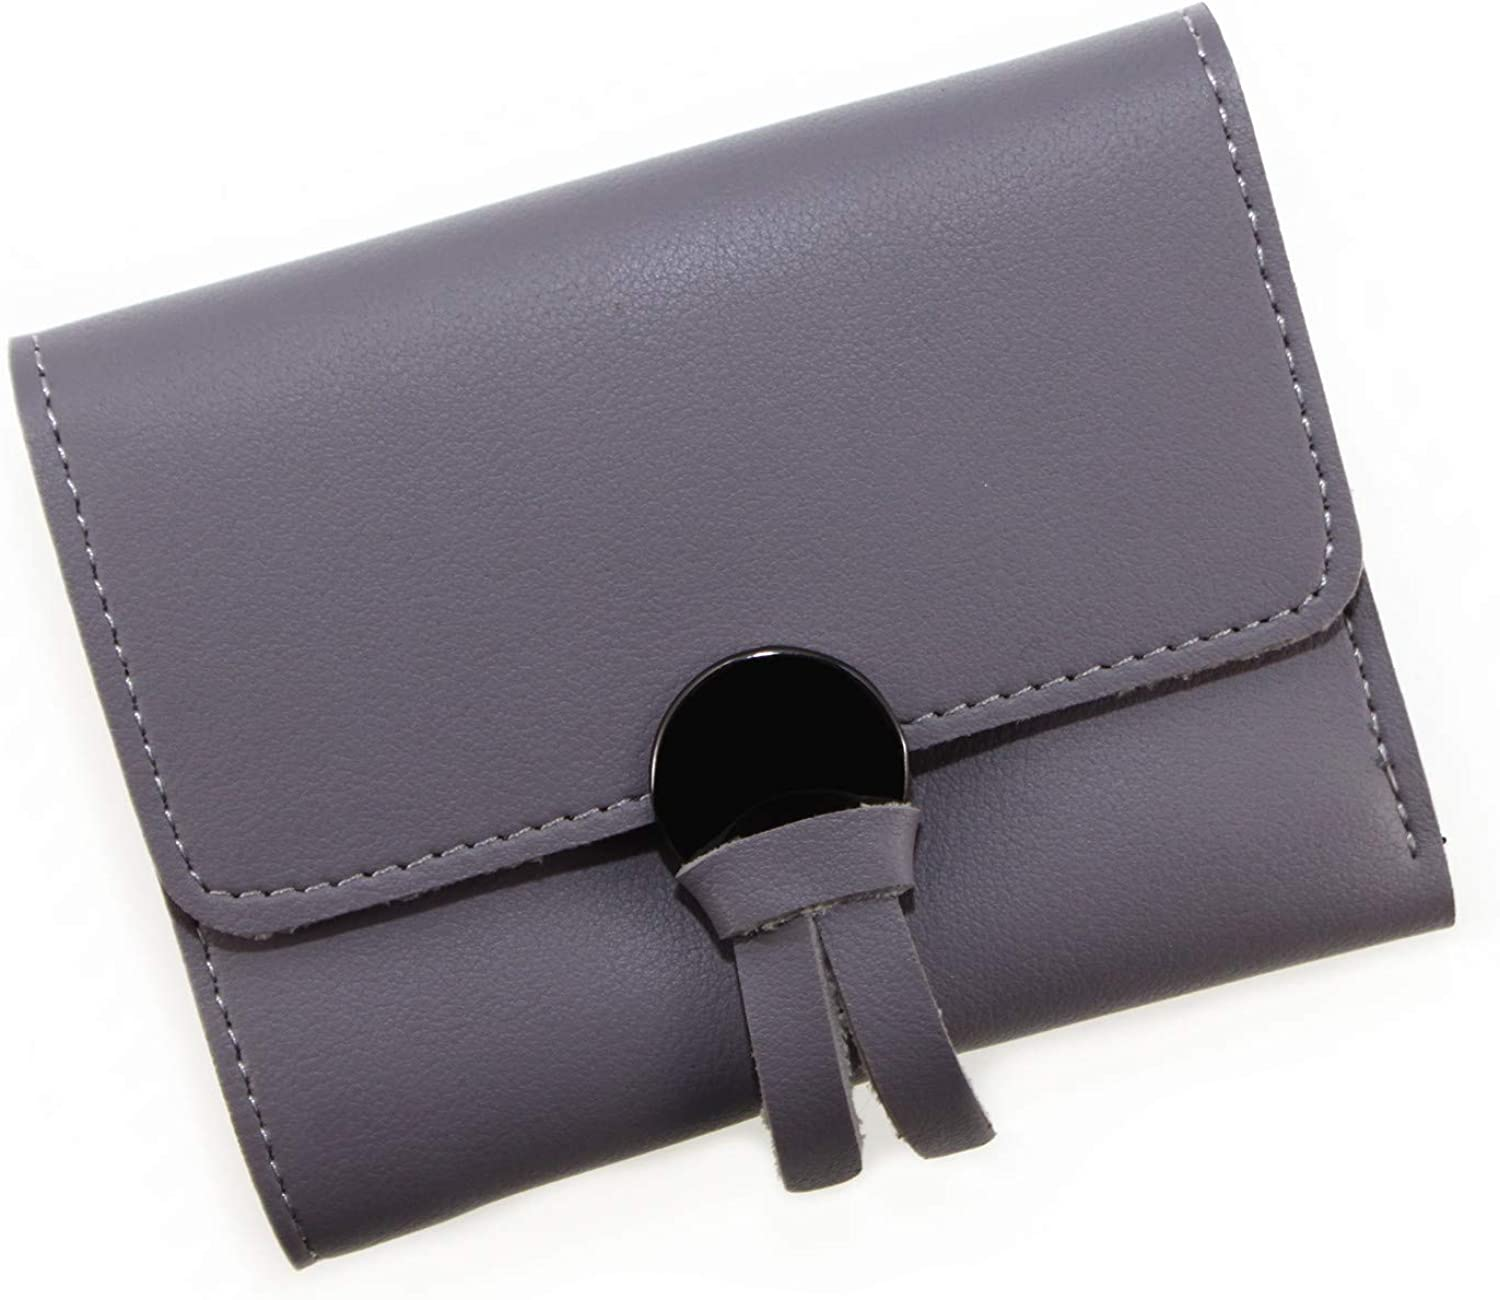 Korean Style Fashion PU Leather Cute Knot Trifold Wallet Cash Coin Purse Card Holder for Girls /& Women